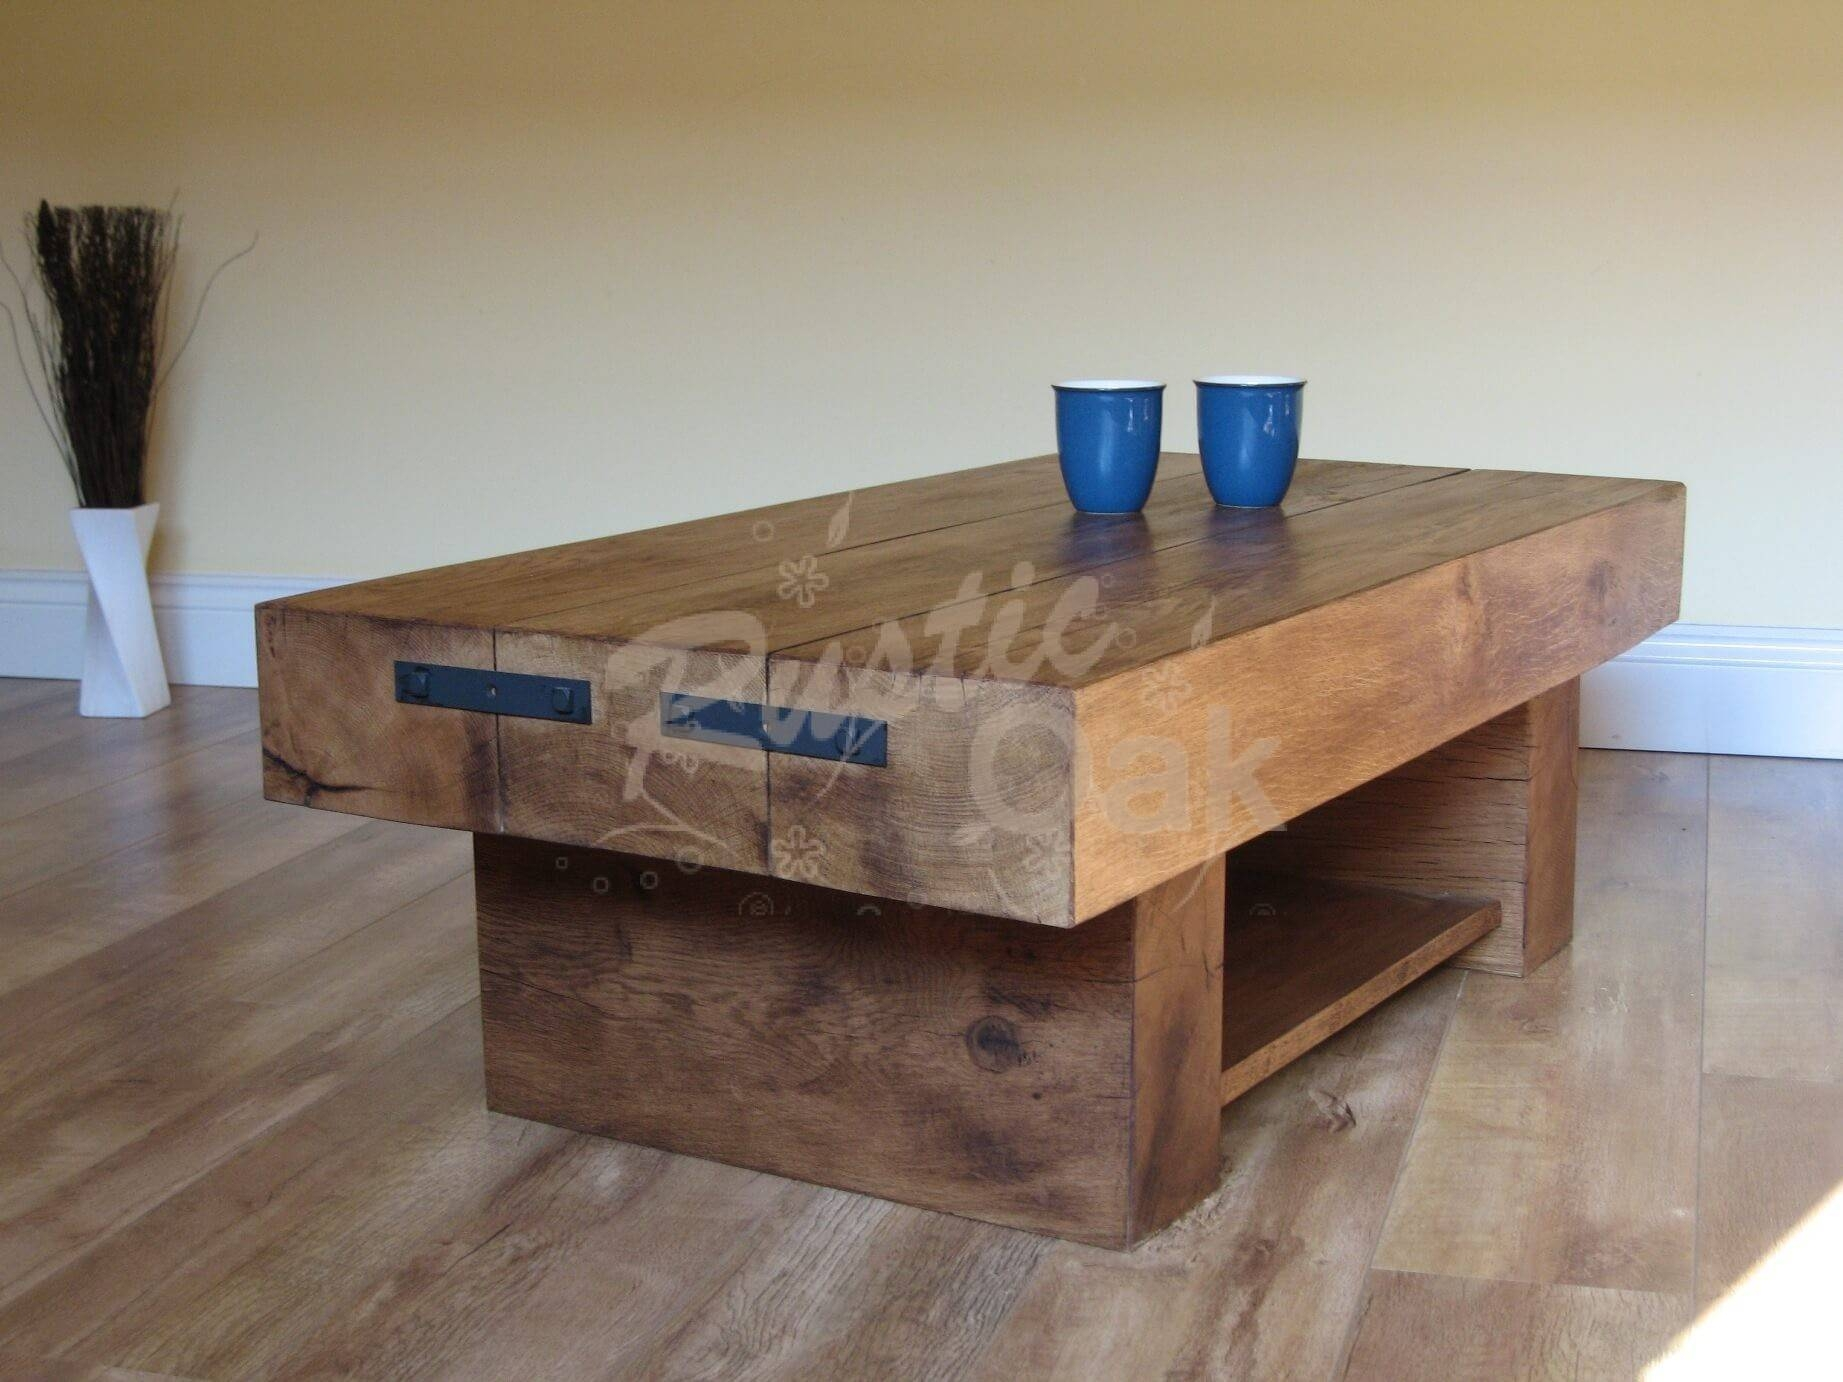 3 Beam Coffee Table With Shelf - Rustic Oak intended for Oak Beam Coffee Tables (Image 2 of 15)